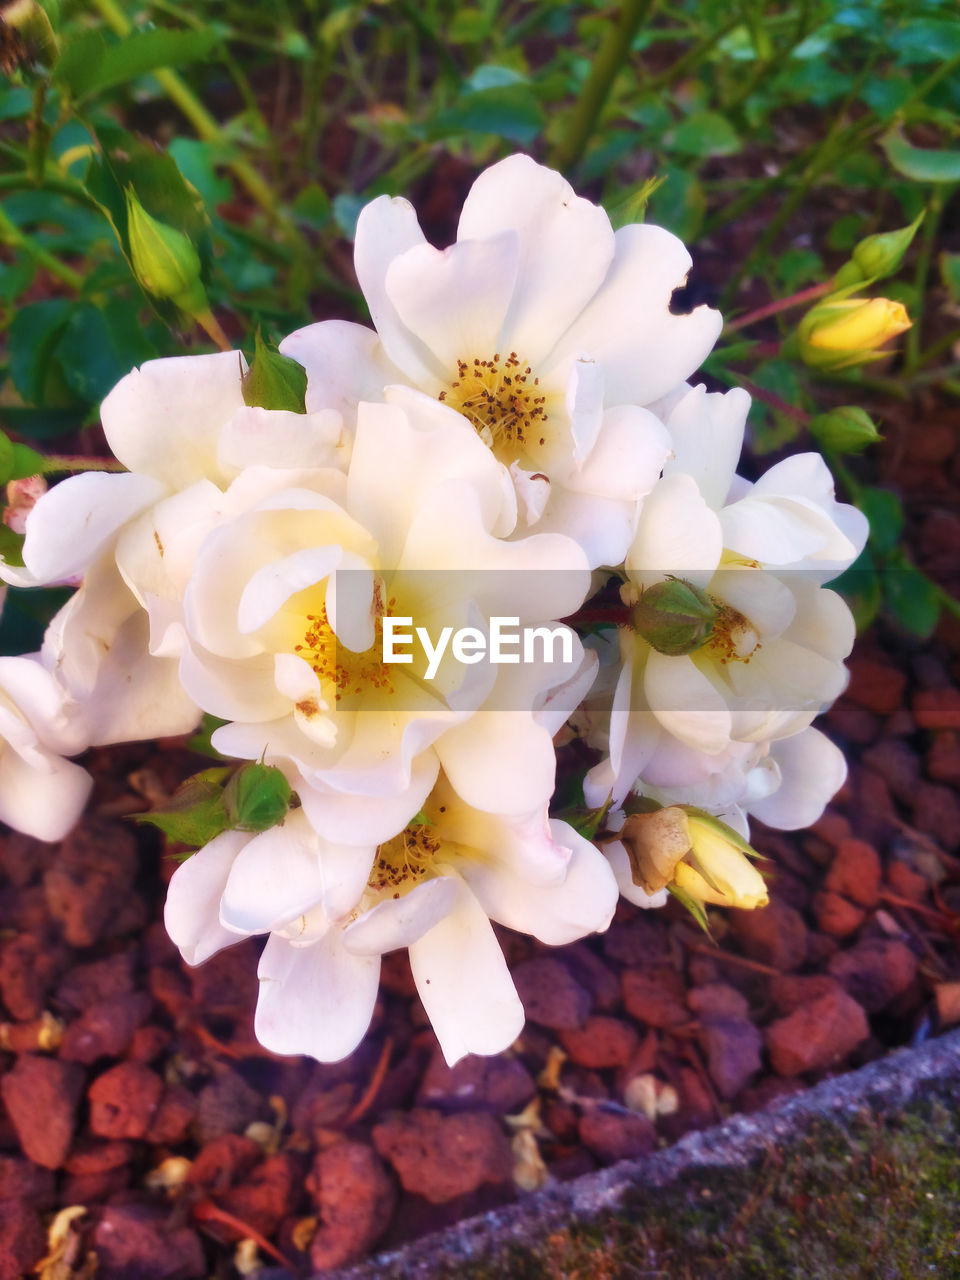 flower, white color, petal, nature, fragility, beauty in nature, freshness, flower head, no people, growth, close-up, outdoors, day